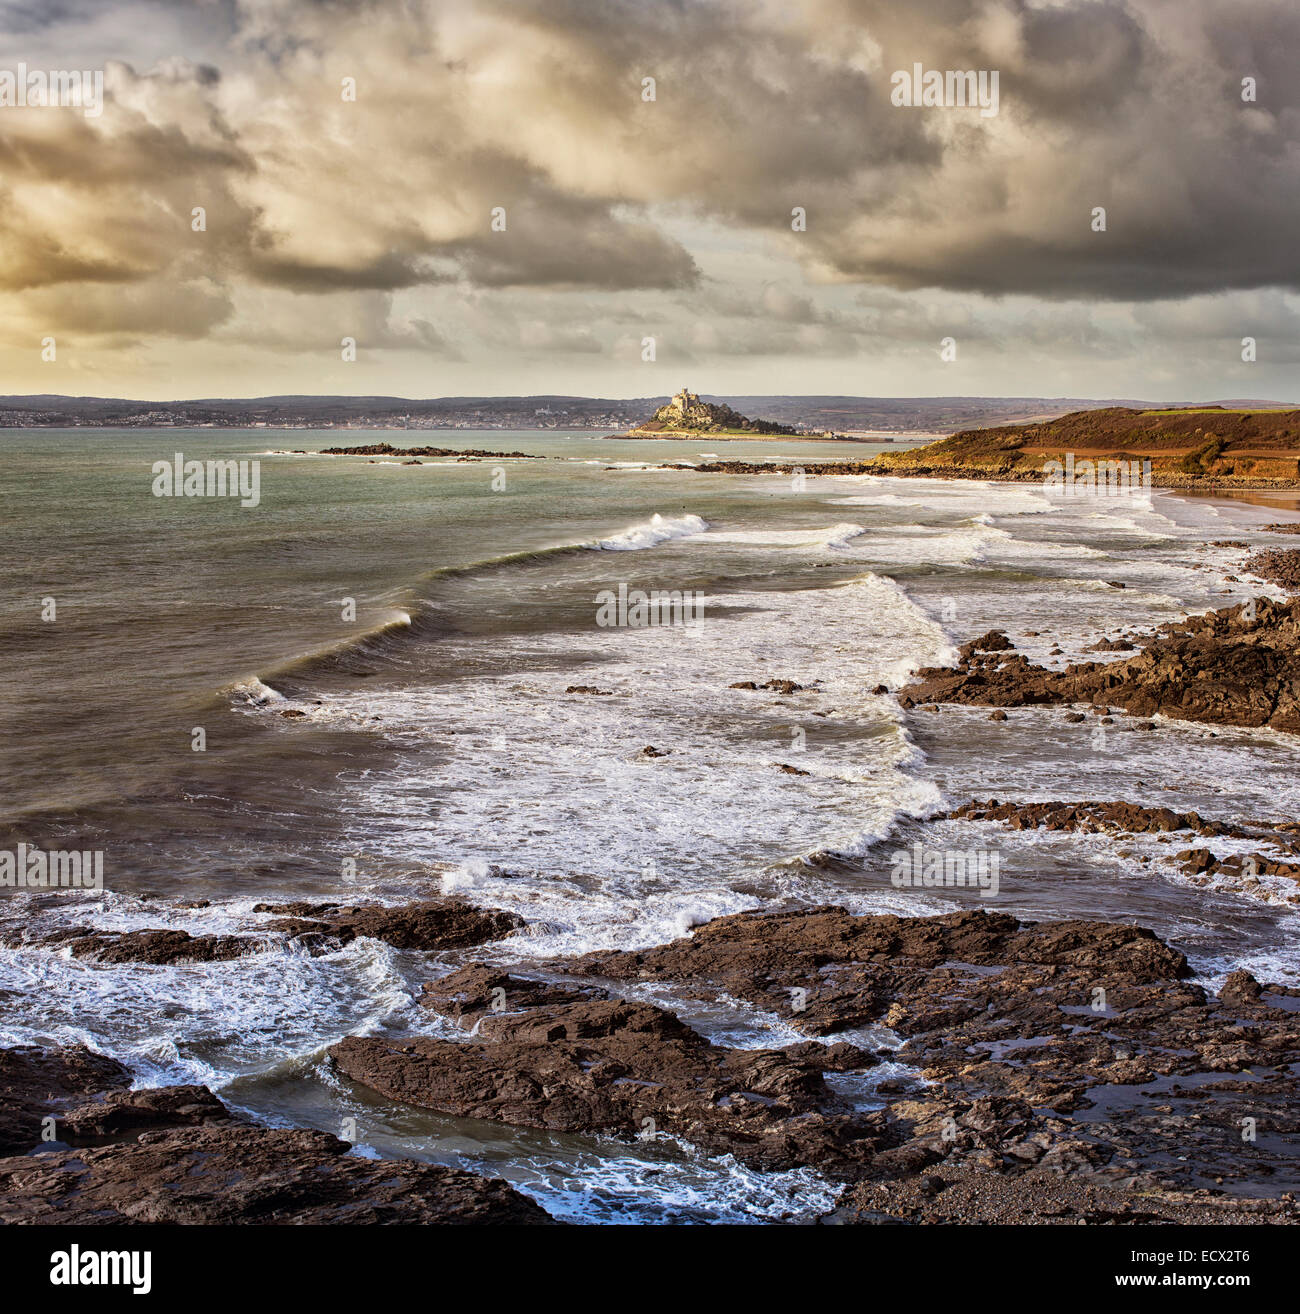 Scenic view of seaside landscape with waves crashing on rocky beach - Stock Image